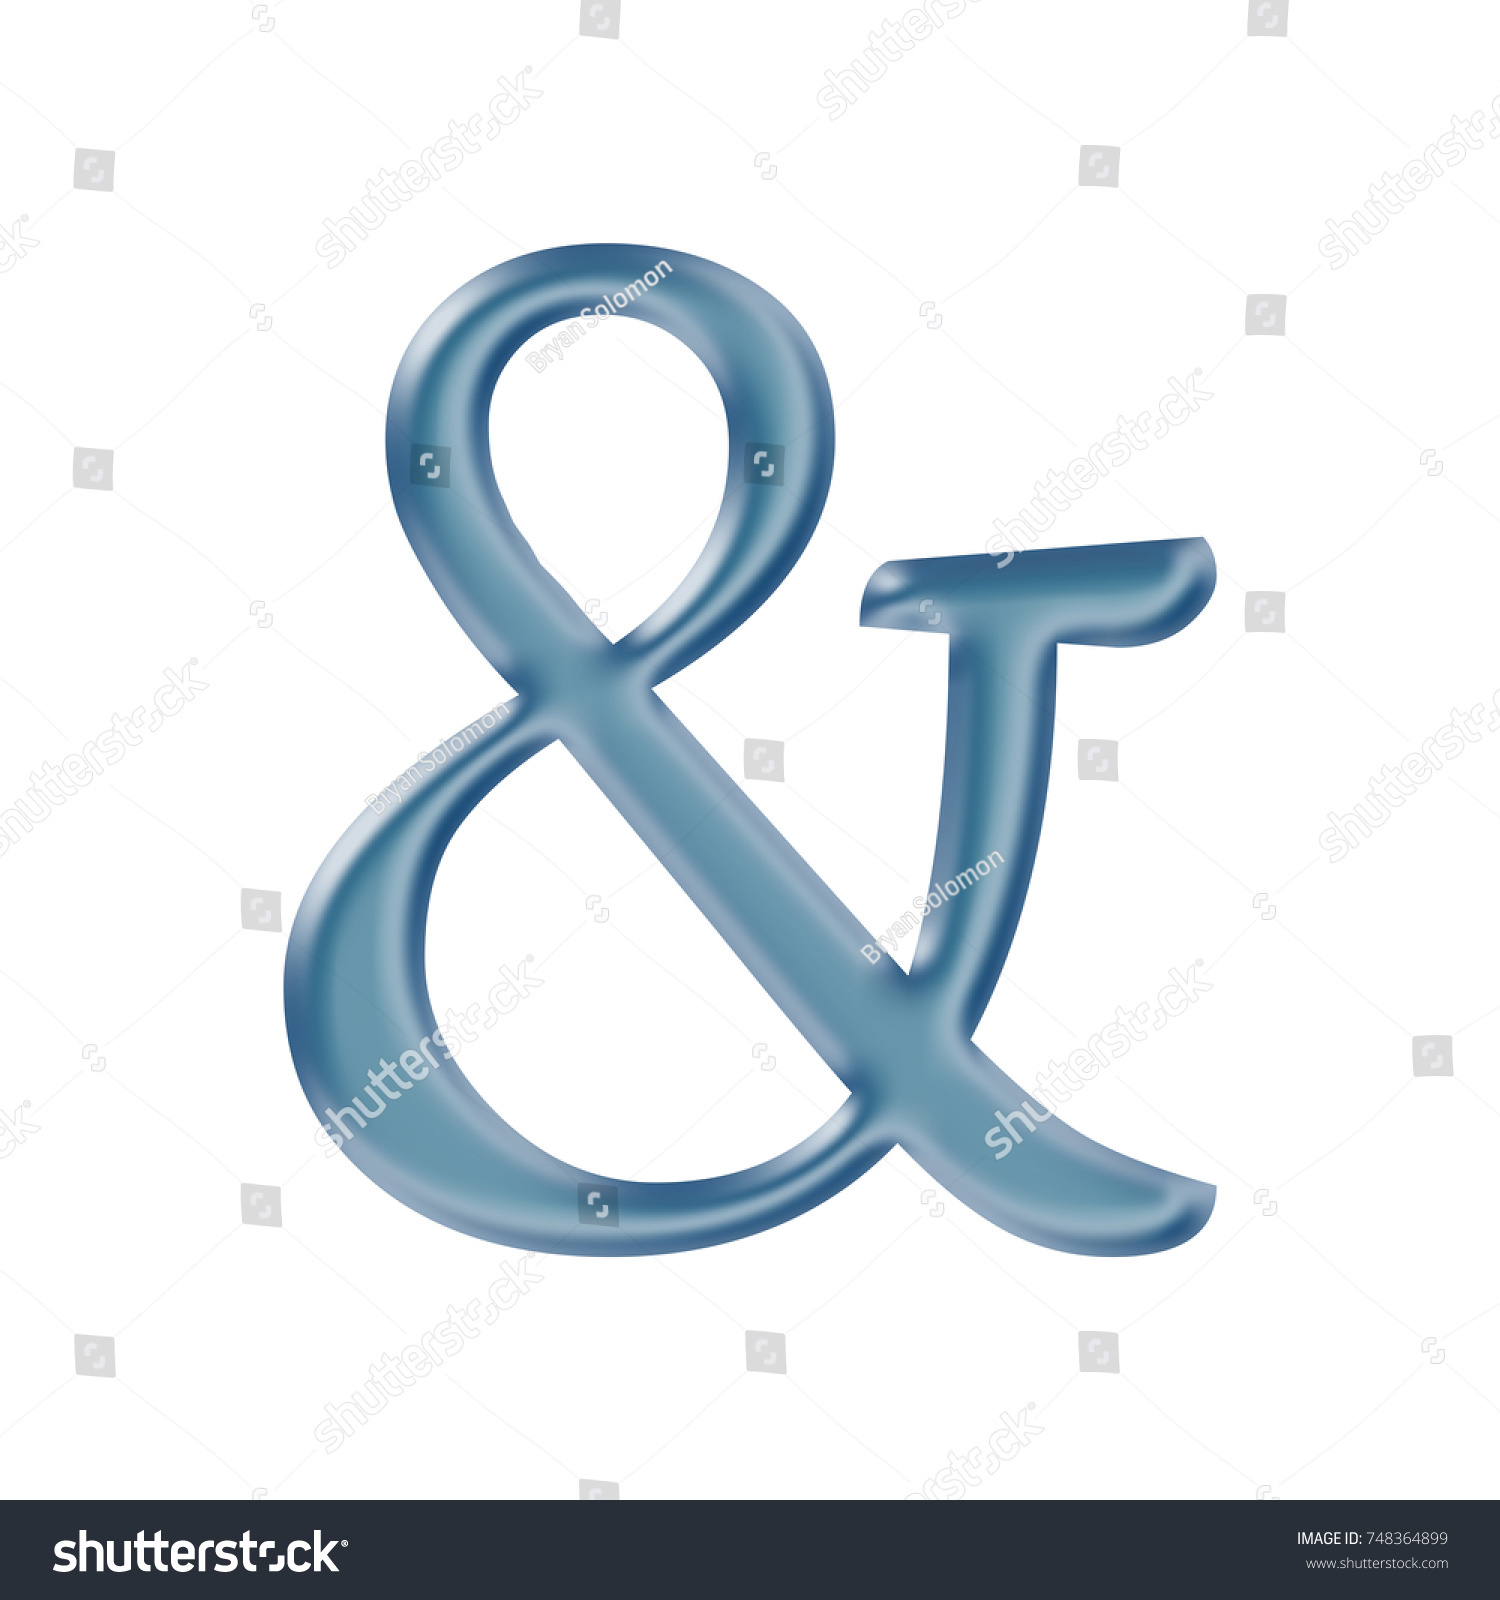 Blue Silky Metallic Ampersand Sign Symbol Stock Illustration